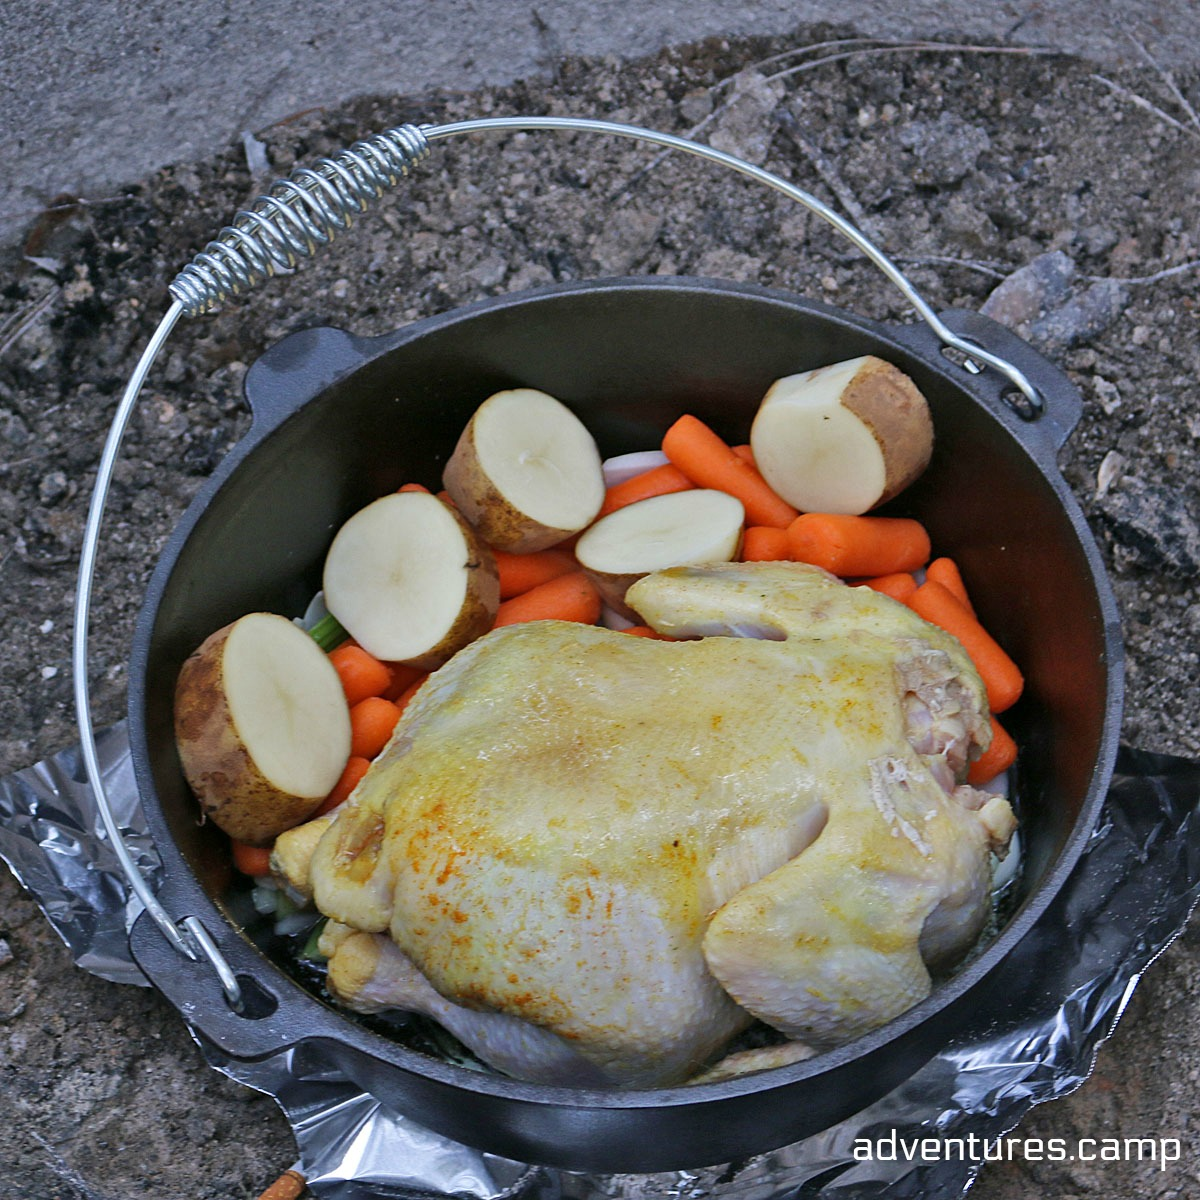 45 Easy Camping Recipes: Dutch Oven Roasted Chicken With Vegetables